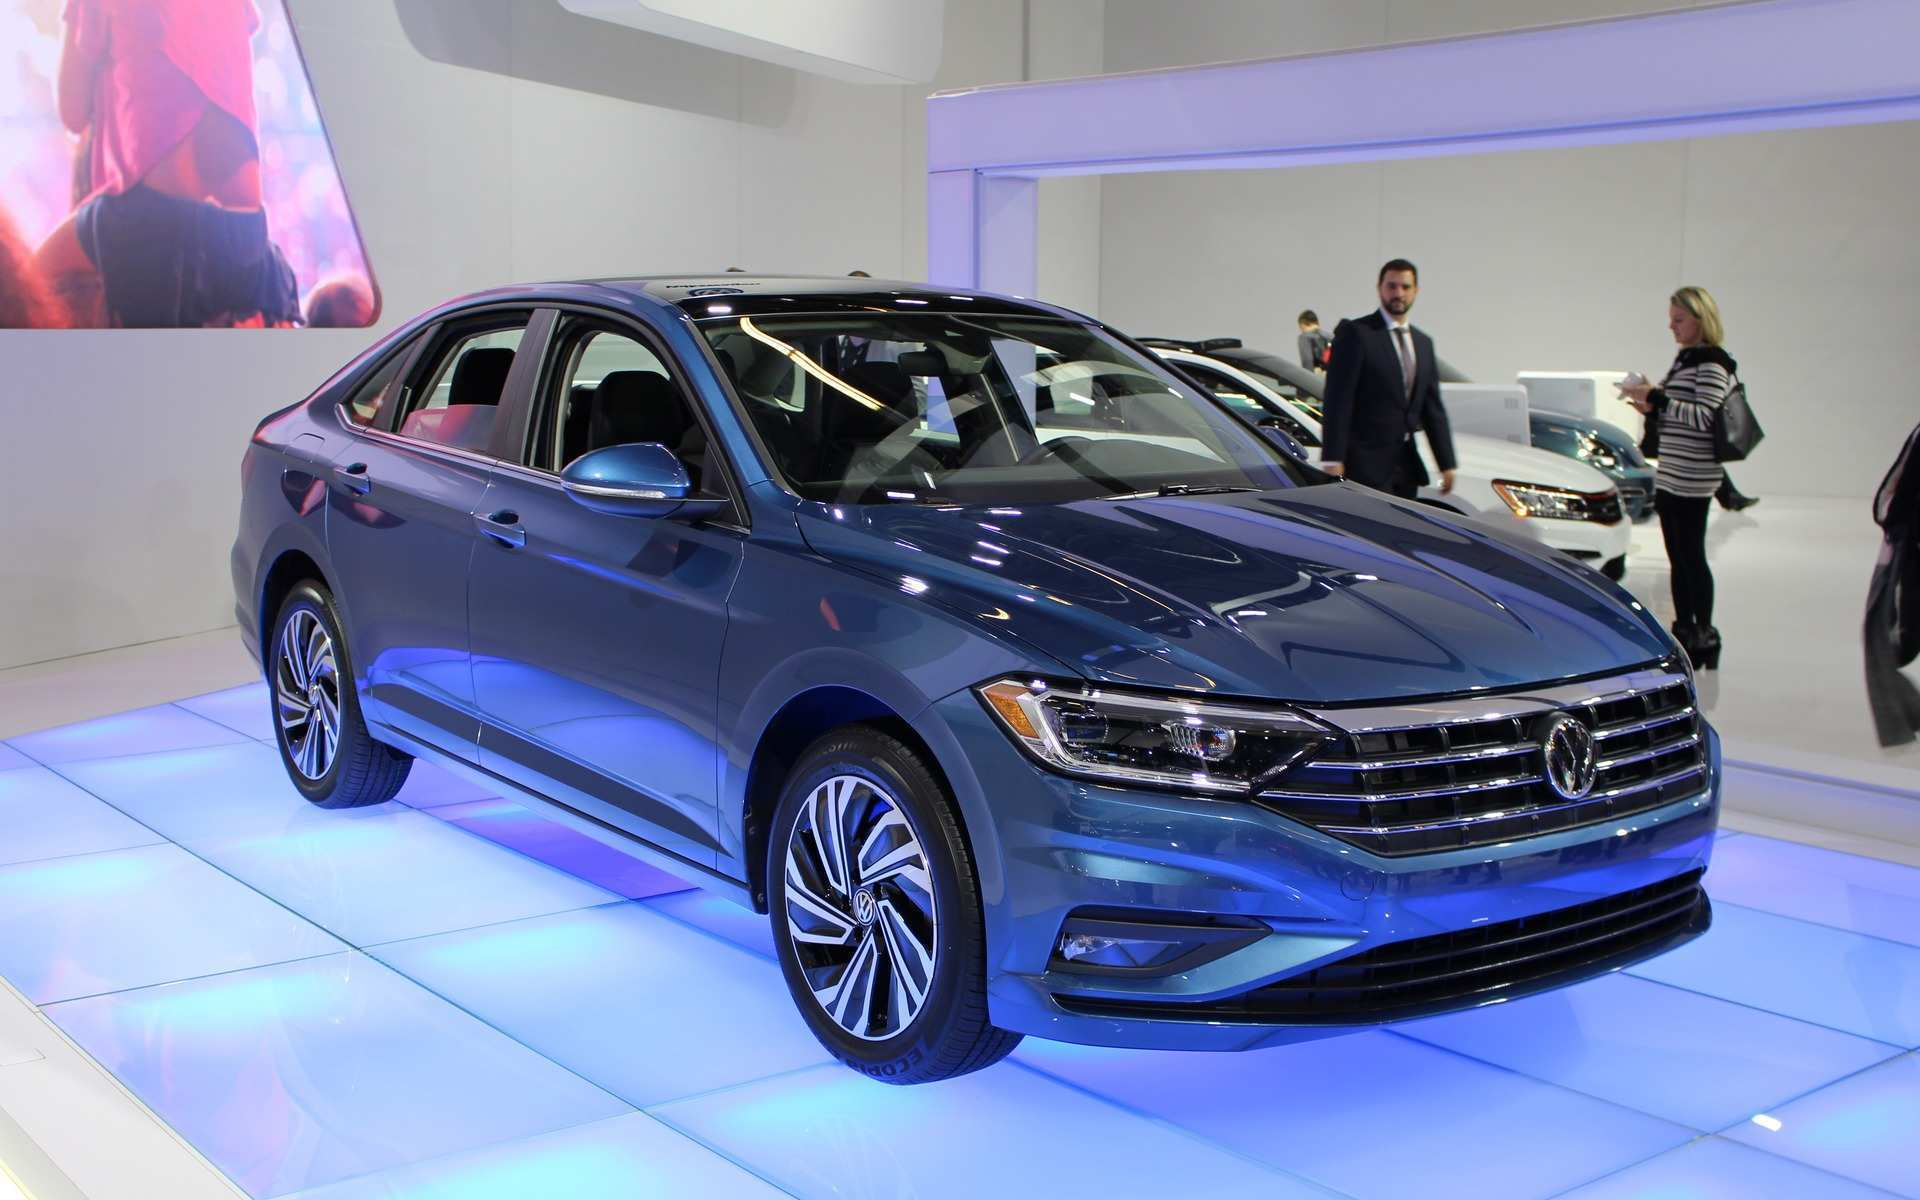 24 New 2019 Vw Jetta Canada Price and Review with 2019 Vw Jetta Canada